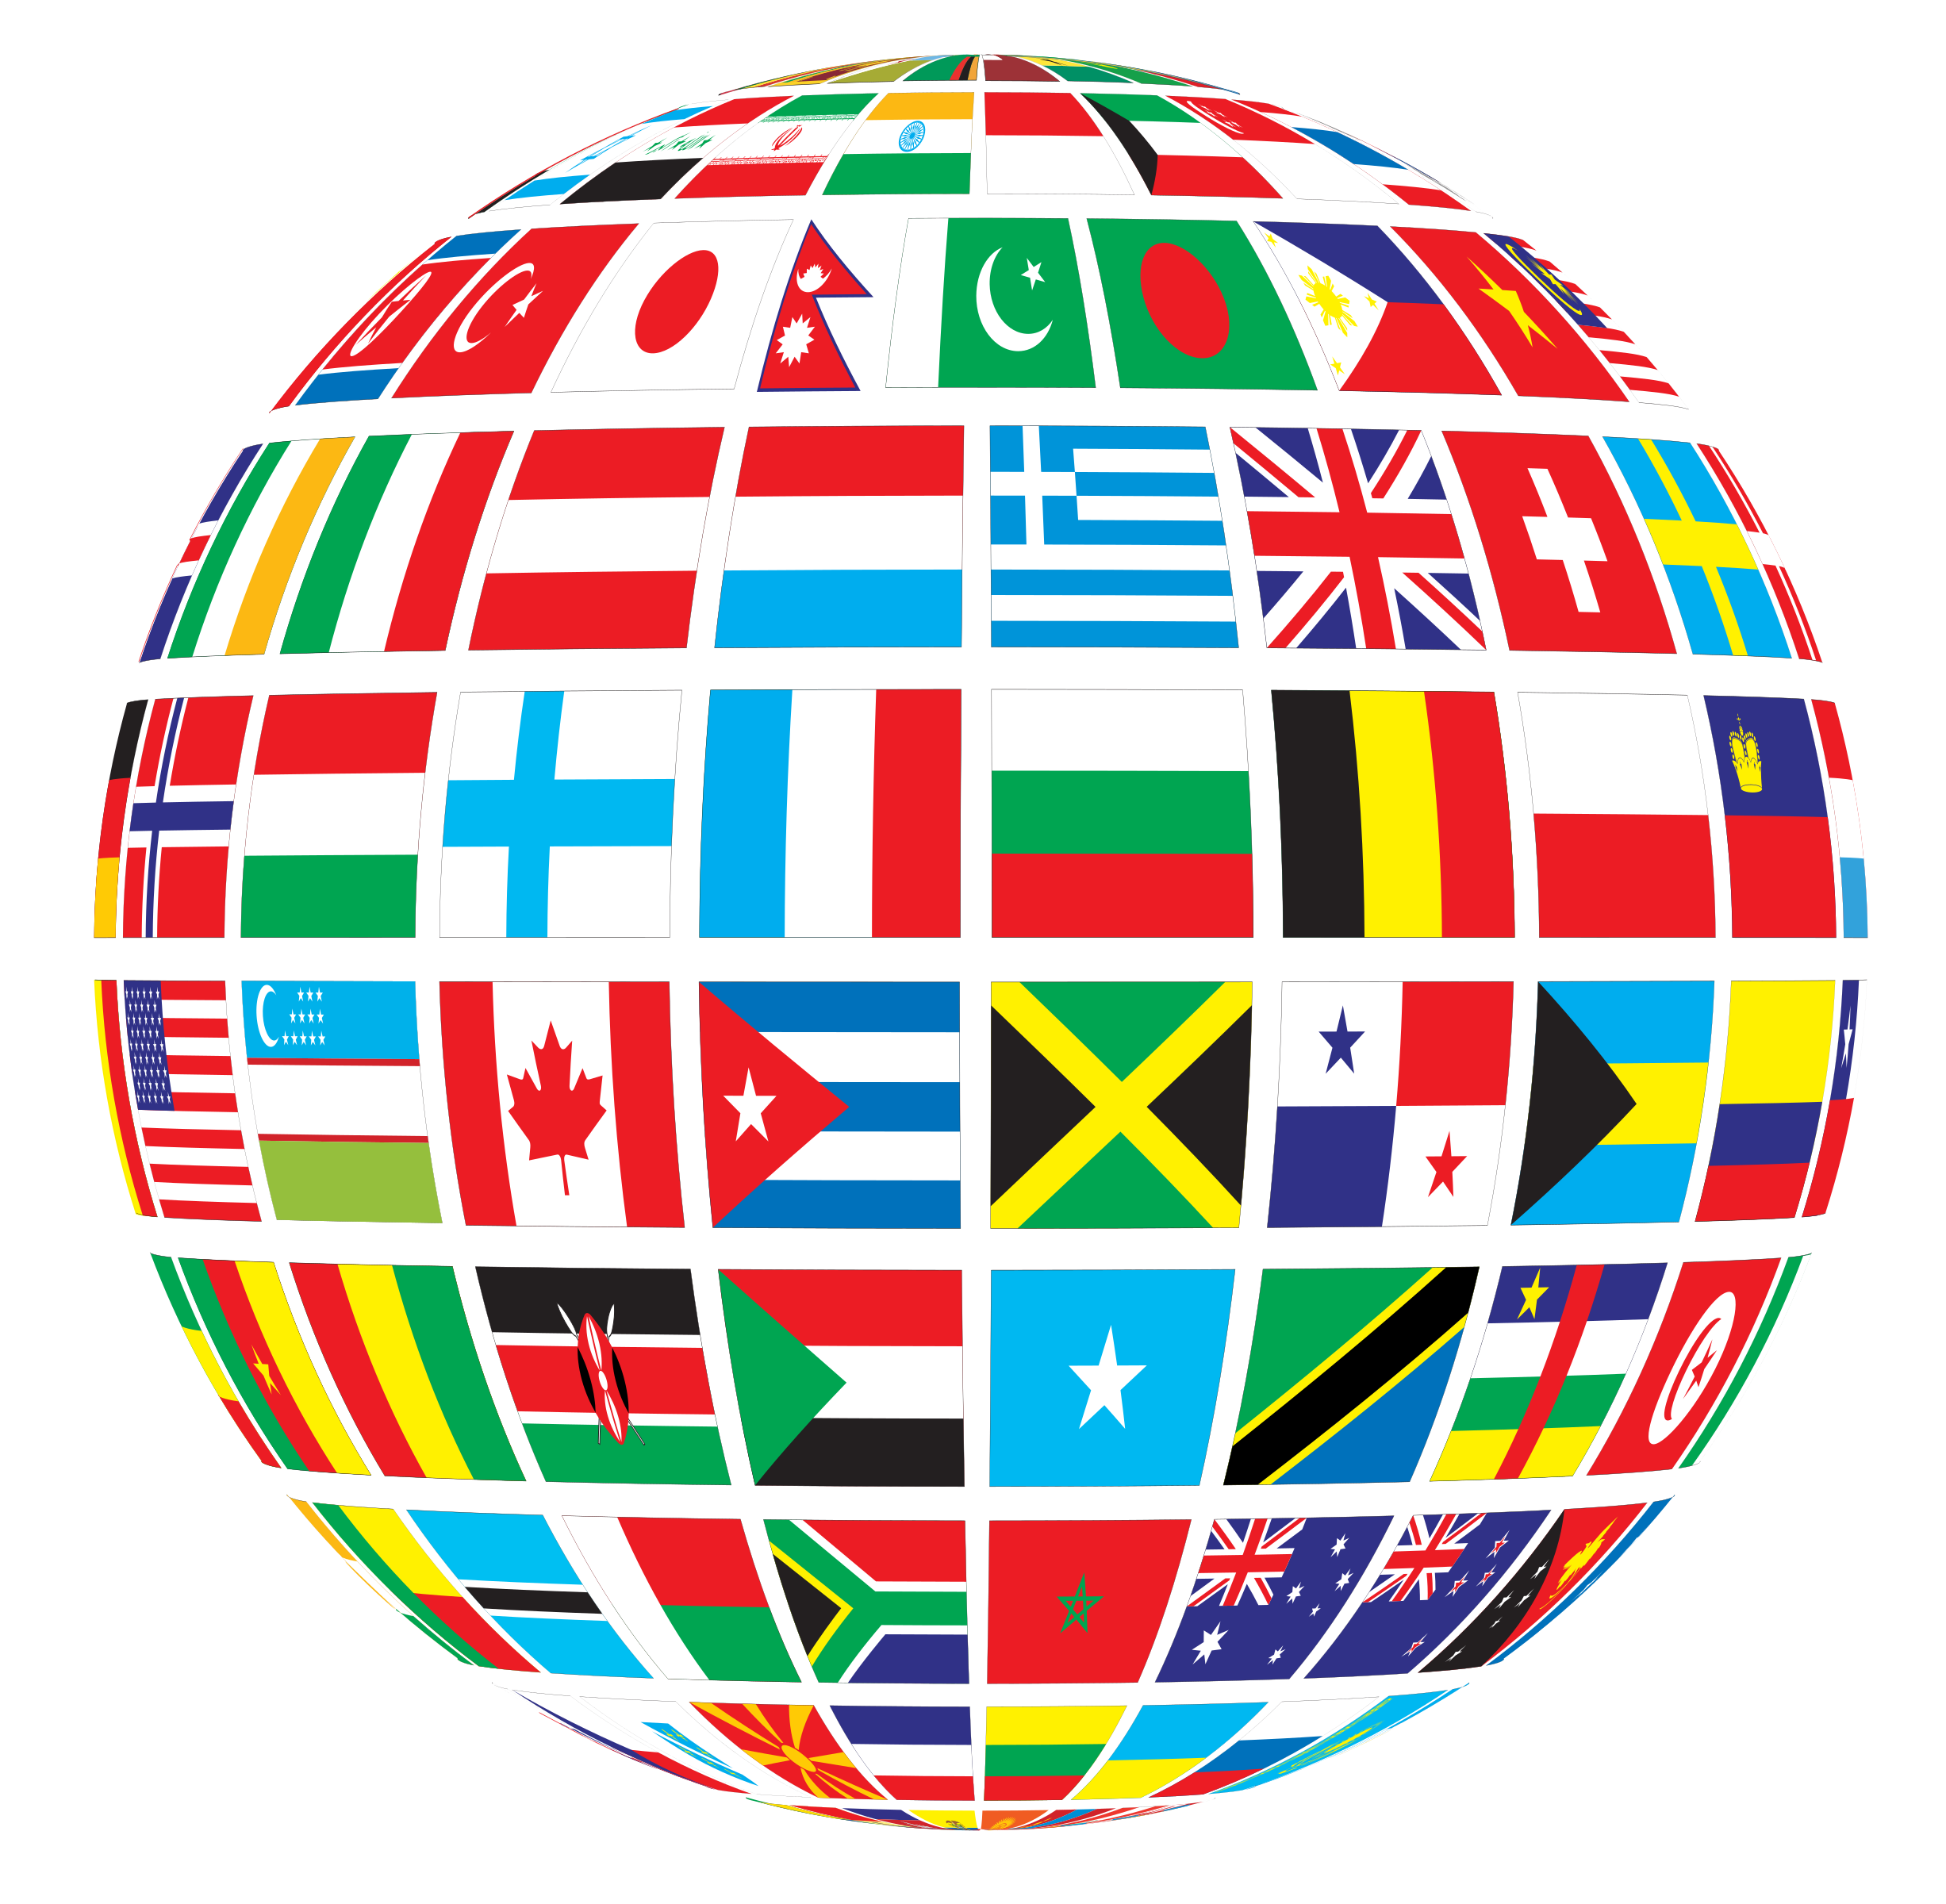 World Flags Globe by GDJ, Flags of the world mapped onto